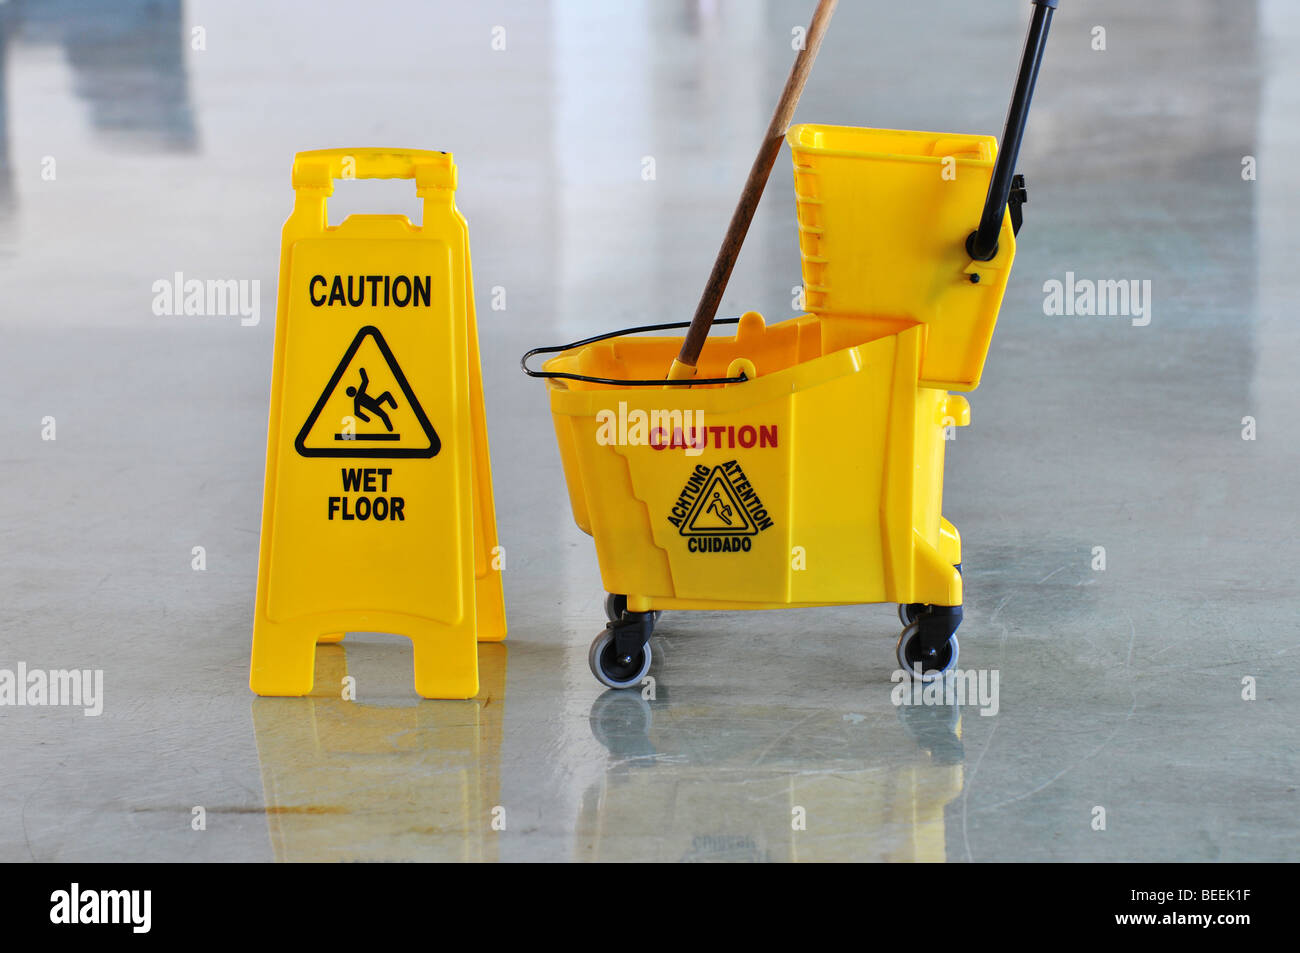 Mop bucket and caution sign on wet floor - Stock Image